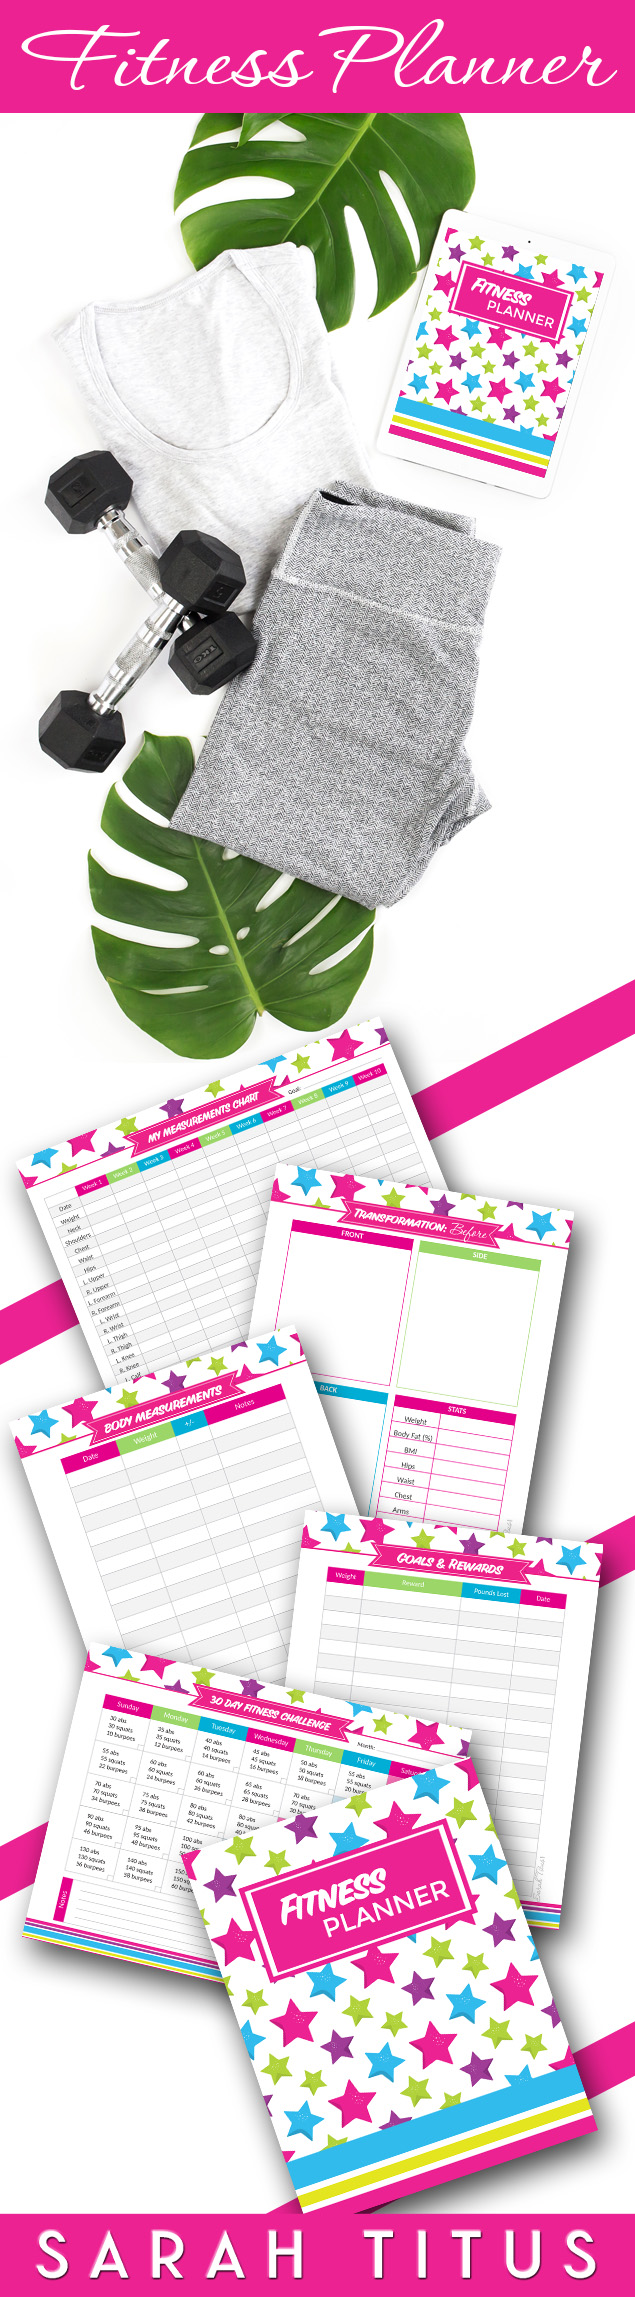 If you're just starting an exercise plan or have done it for years, this fitness planner set will help you get in shape and organize your fitness plan.